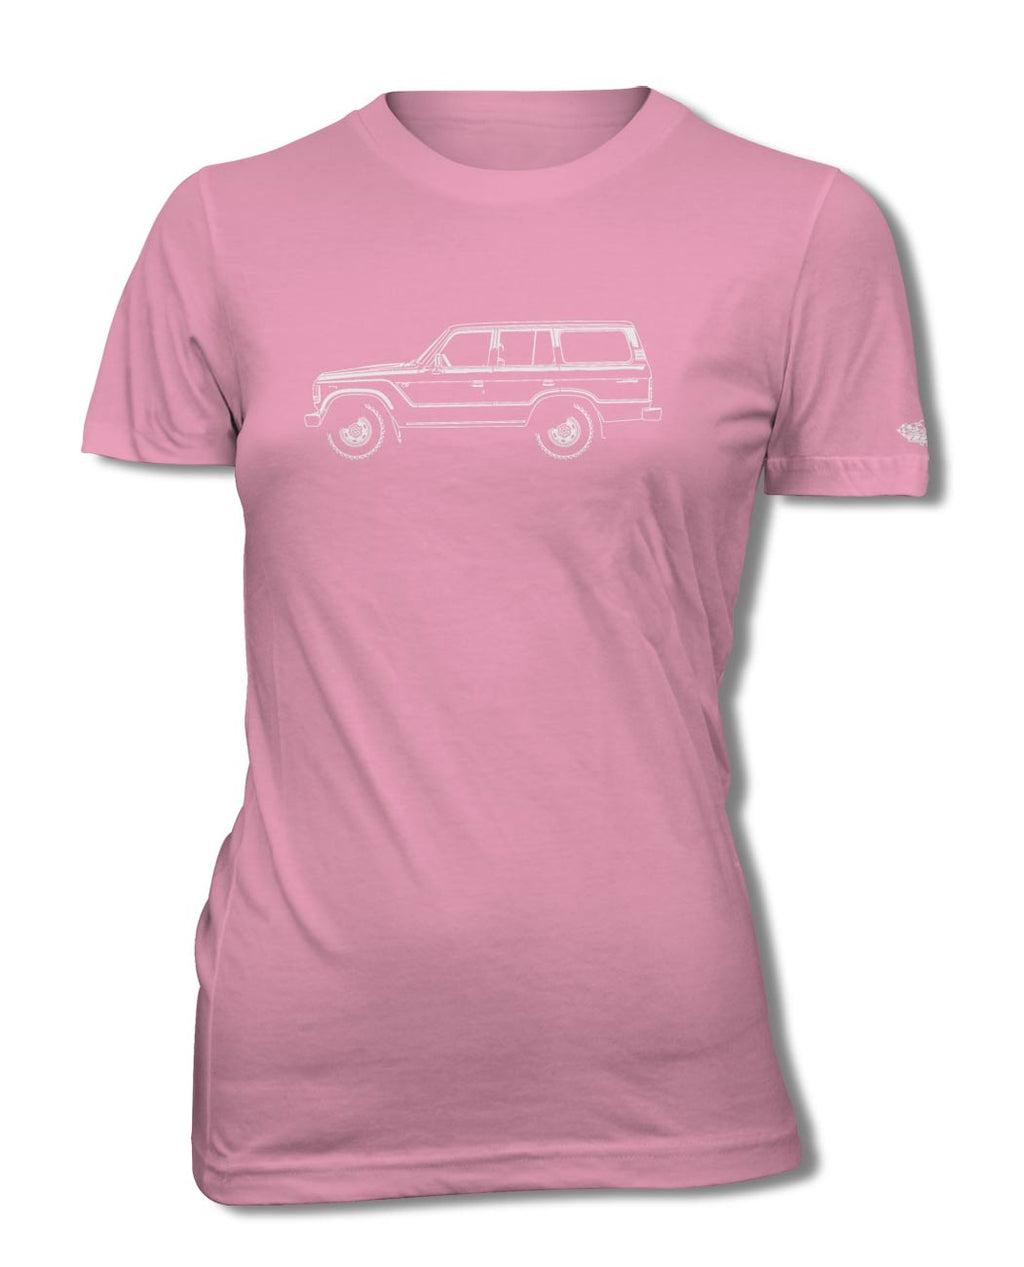 Toyota BJ60 FJ60 Land Cruiser 4x4 T-Shirt - Women - Side View